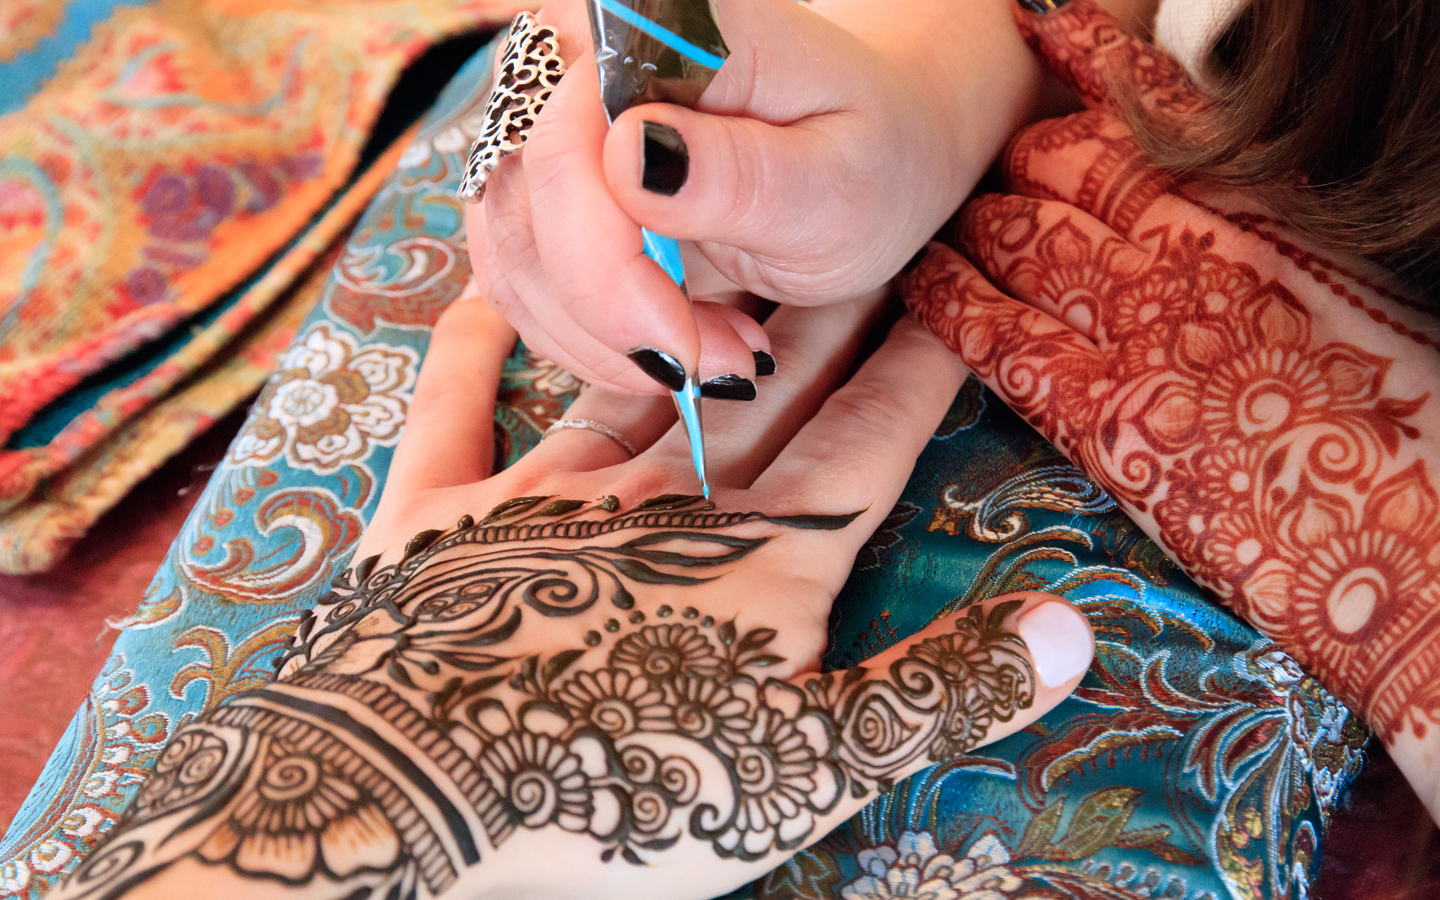 Get beautiful henna designs applied to your hands at TipTop Beauty Lounge